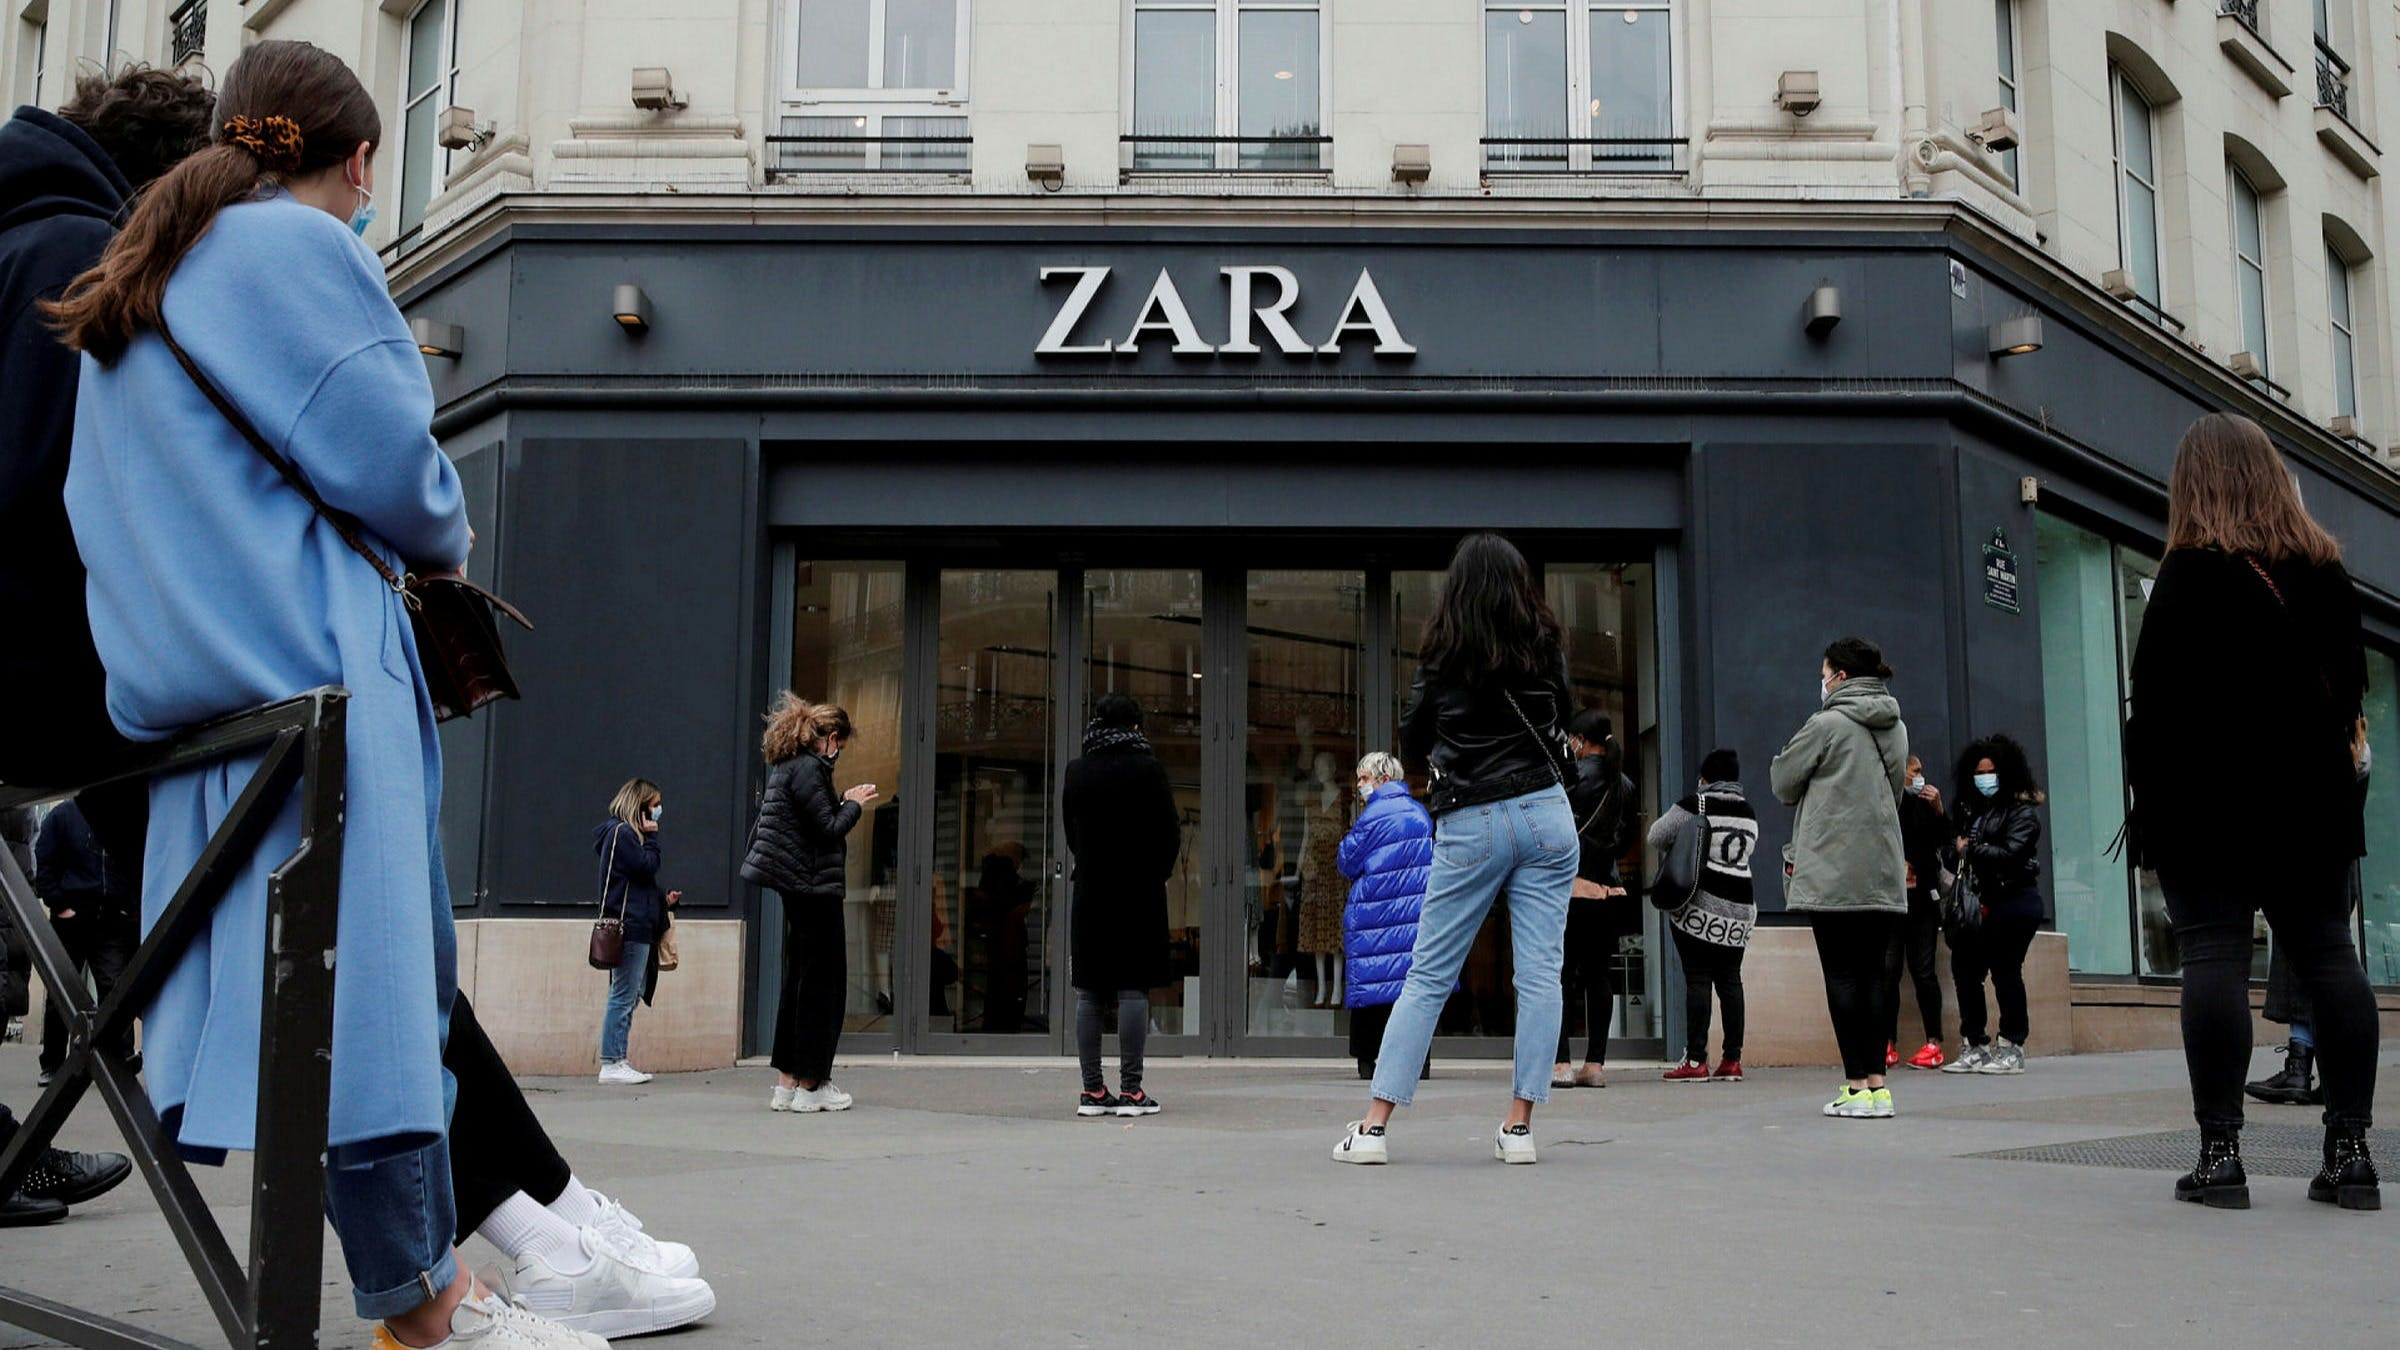 ZARA AND GUESS TO SHUT DOWN OVER 1000 STORES WORLDWIDE